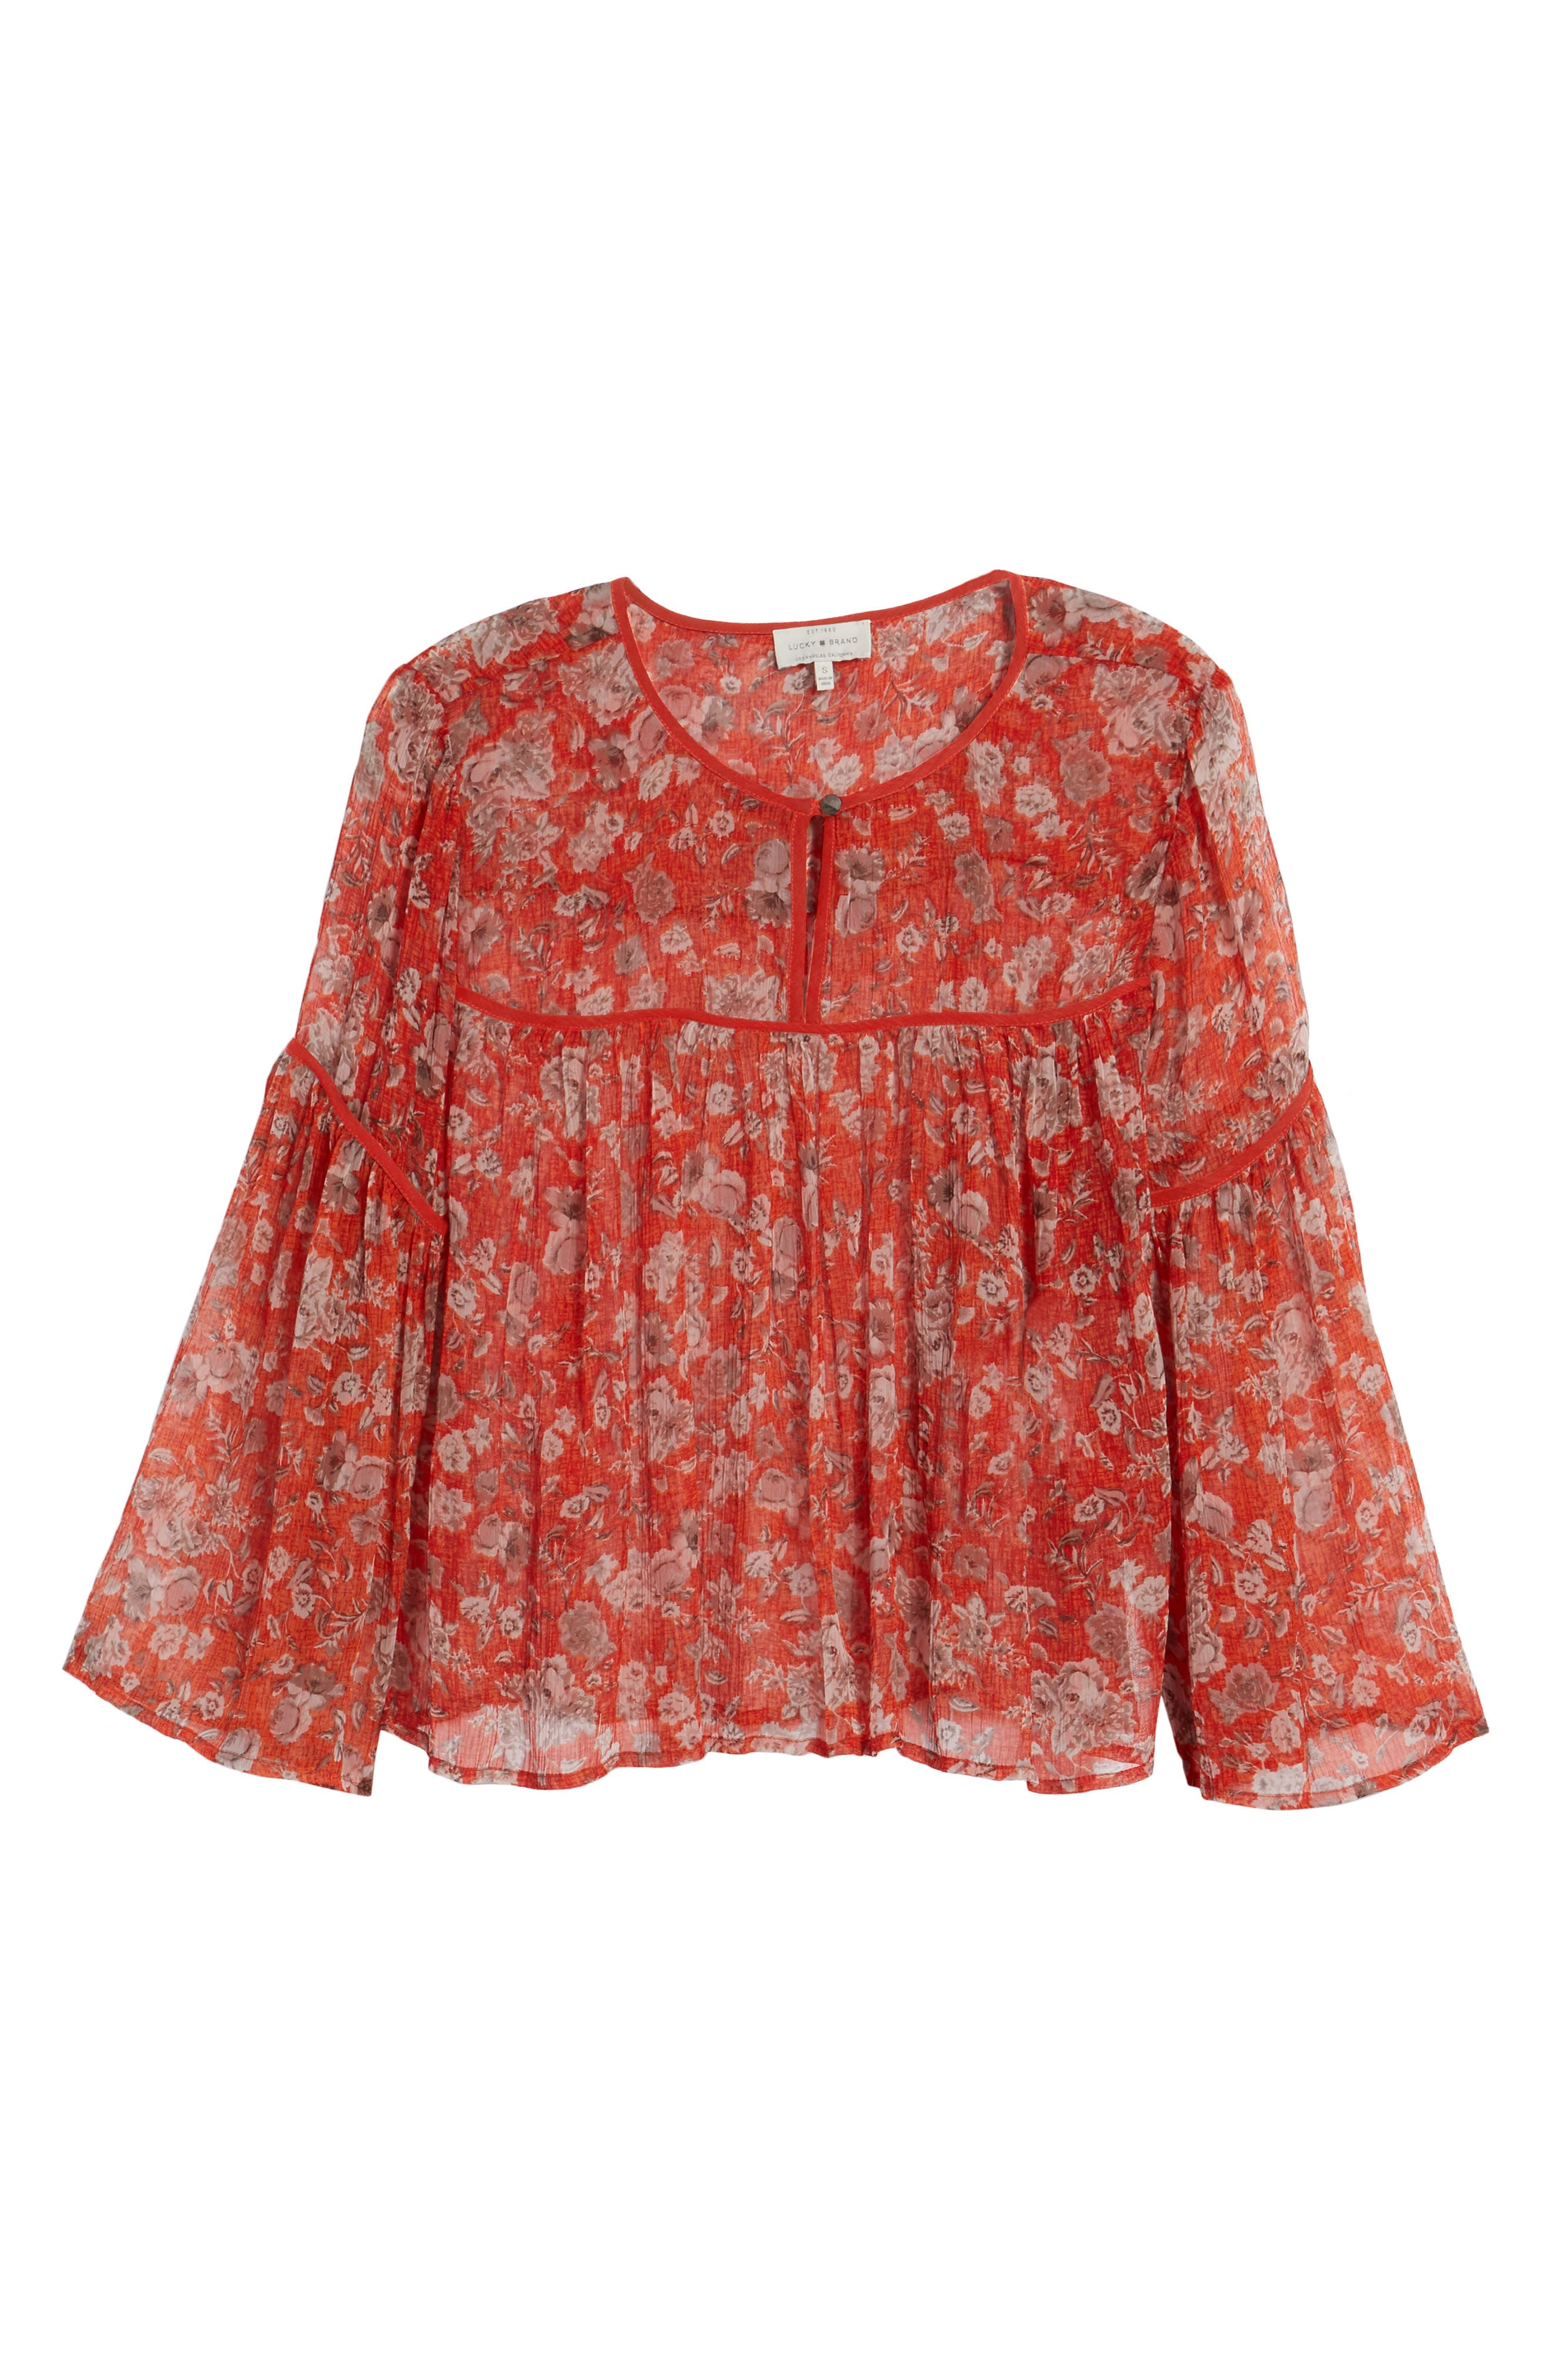 Floral Print Bell Sleeve Top,                             Alternate thumbnail 6, color,                             610